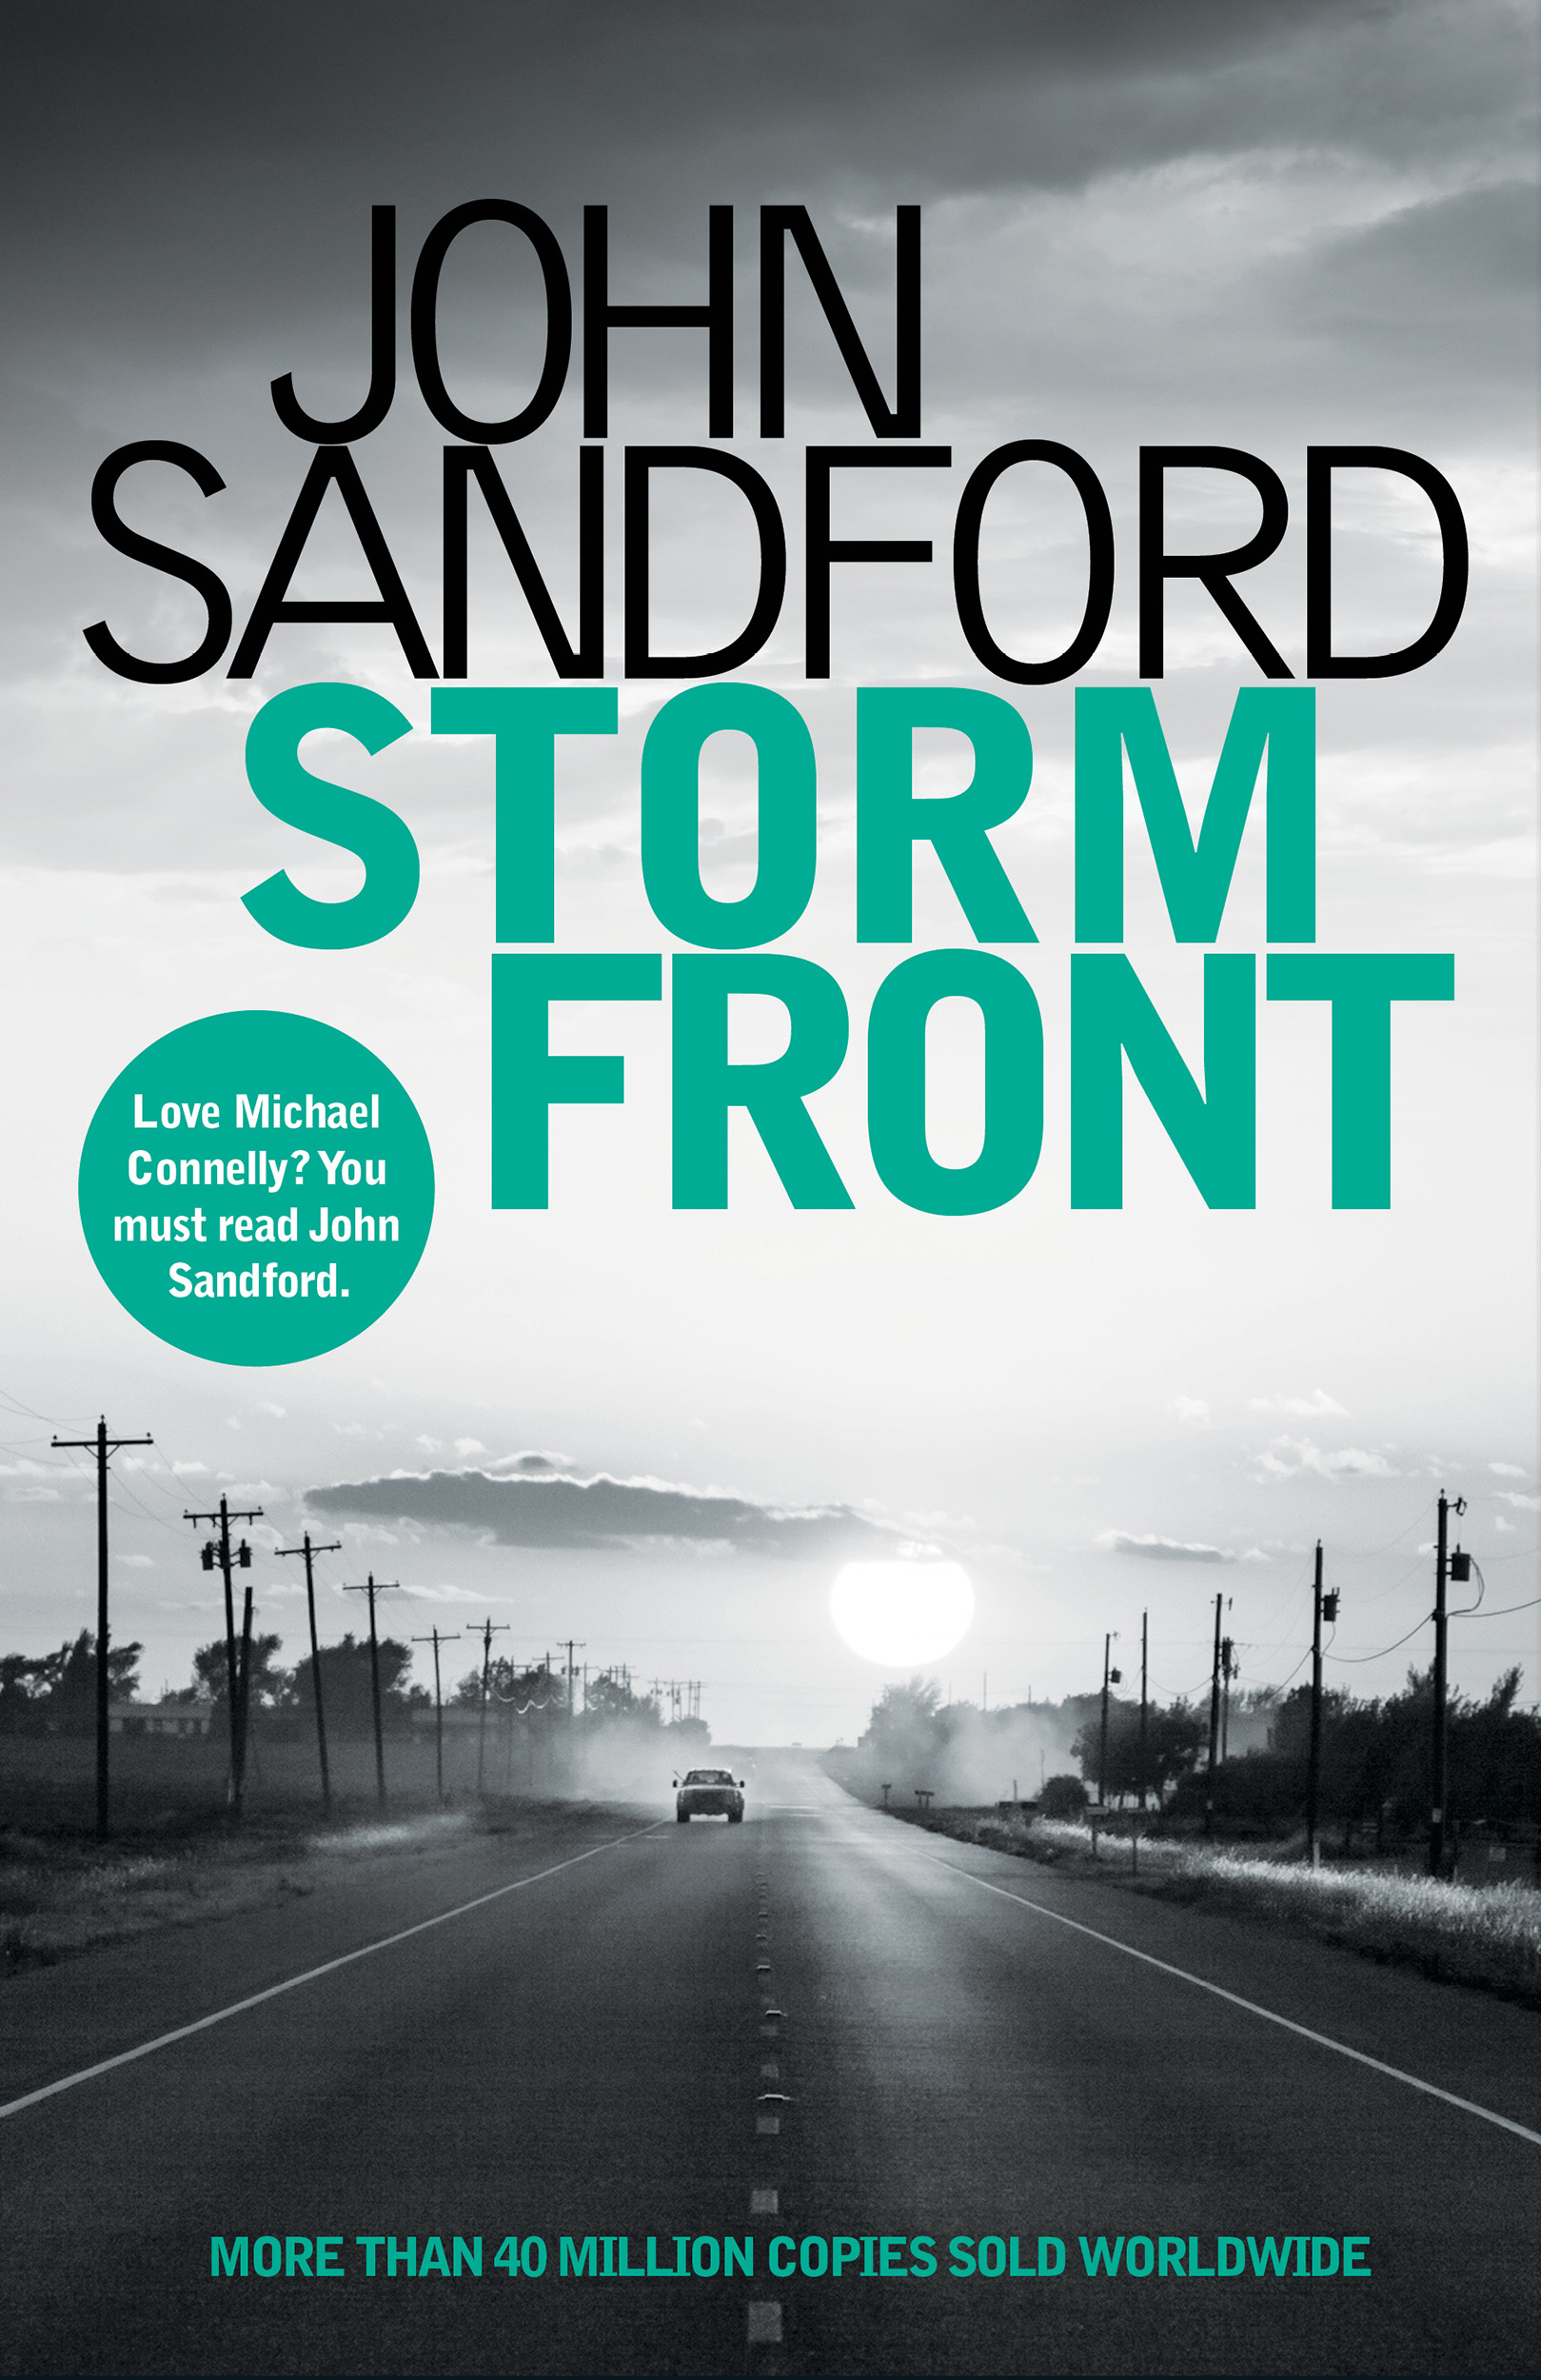 Storm Front Book by John Sandford ficial Publisher Page